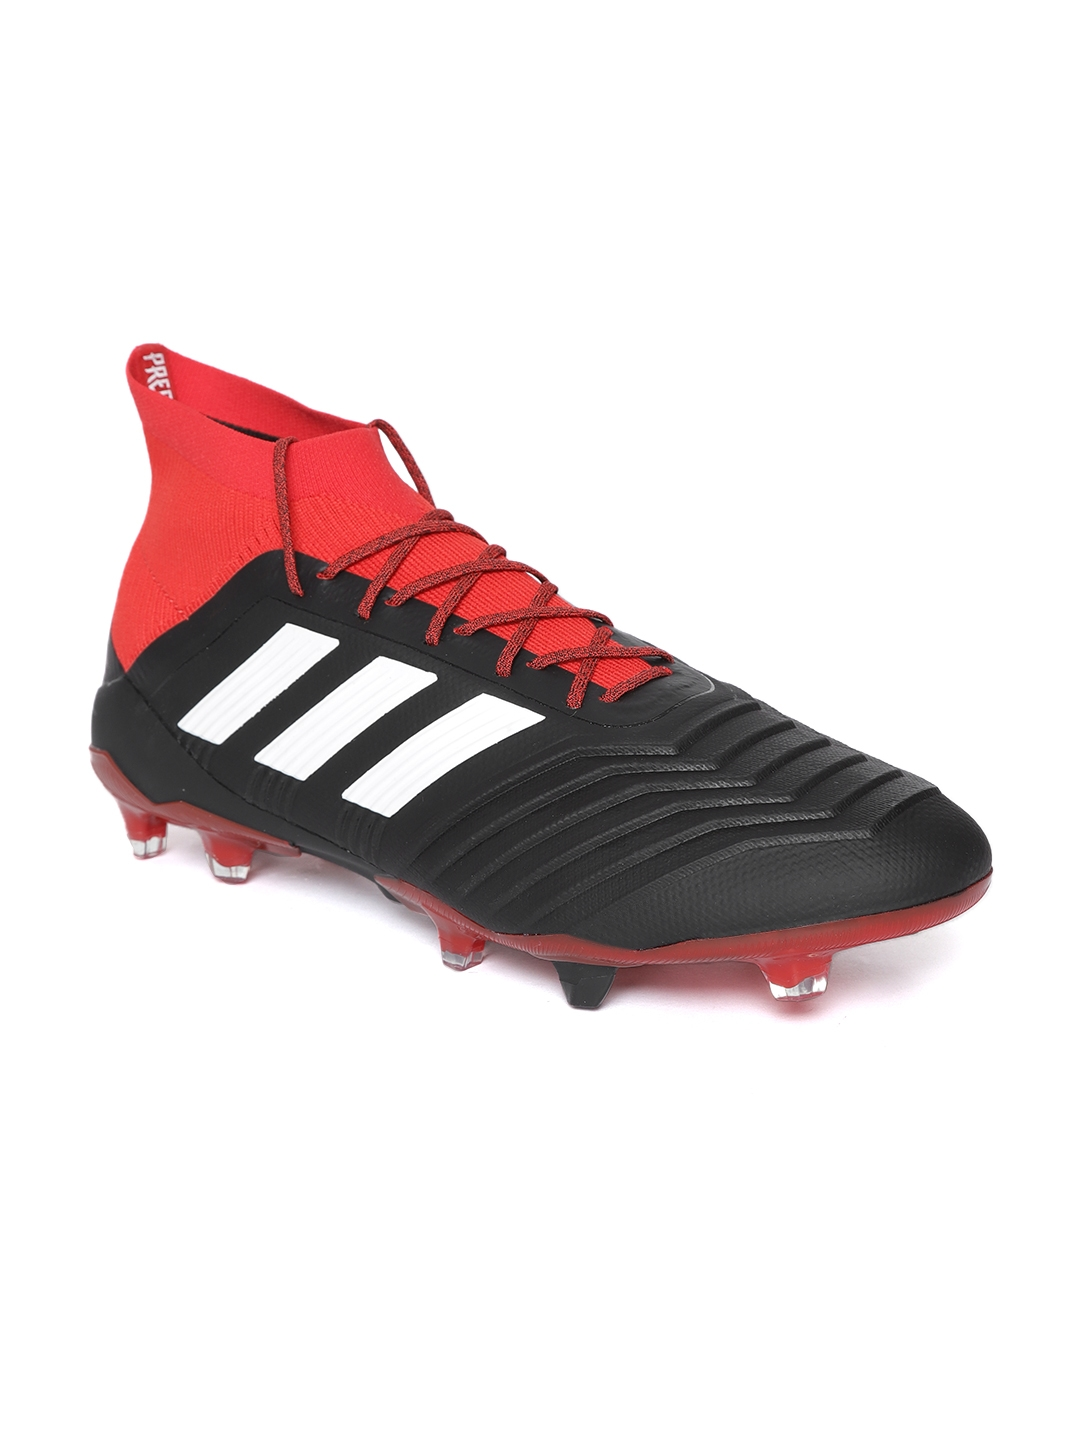 4044eb5dd1e Buy ADIDAS Men Black   Red Predator 18.1 FG Football Shoes - Sports ...